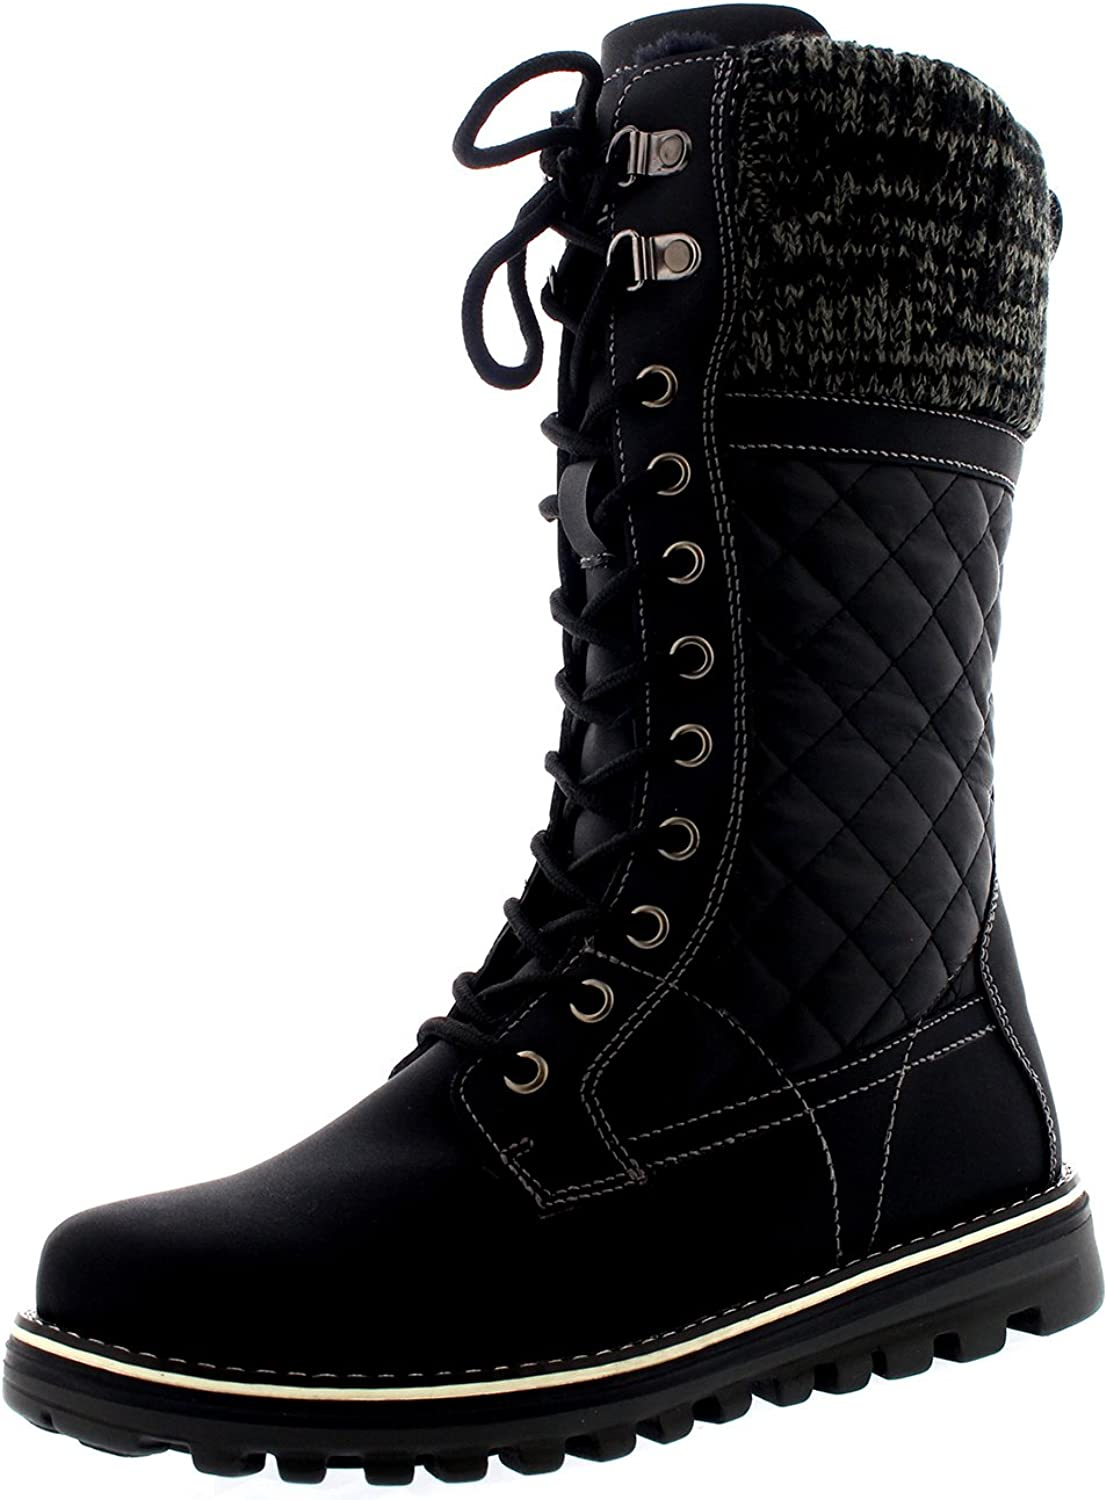 Polar Womens Winter Thermal Snow Outdoor Warm Mid Calf Waterproof Durable Boot - Black Leather - US10 EU41 - YC0379